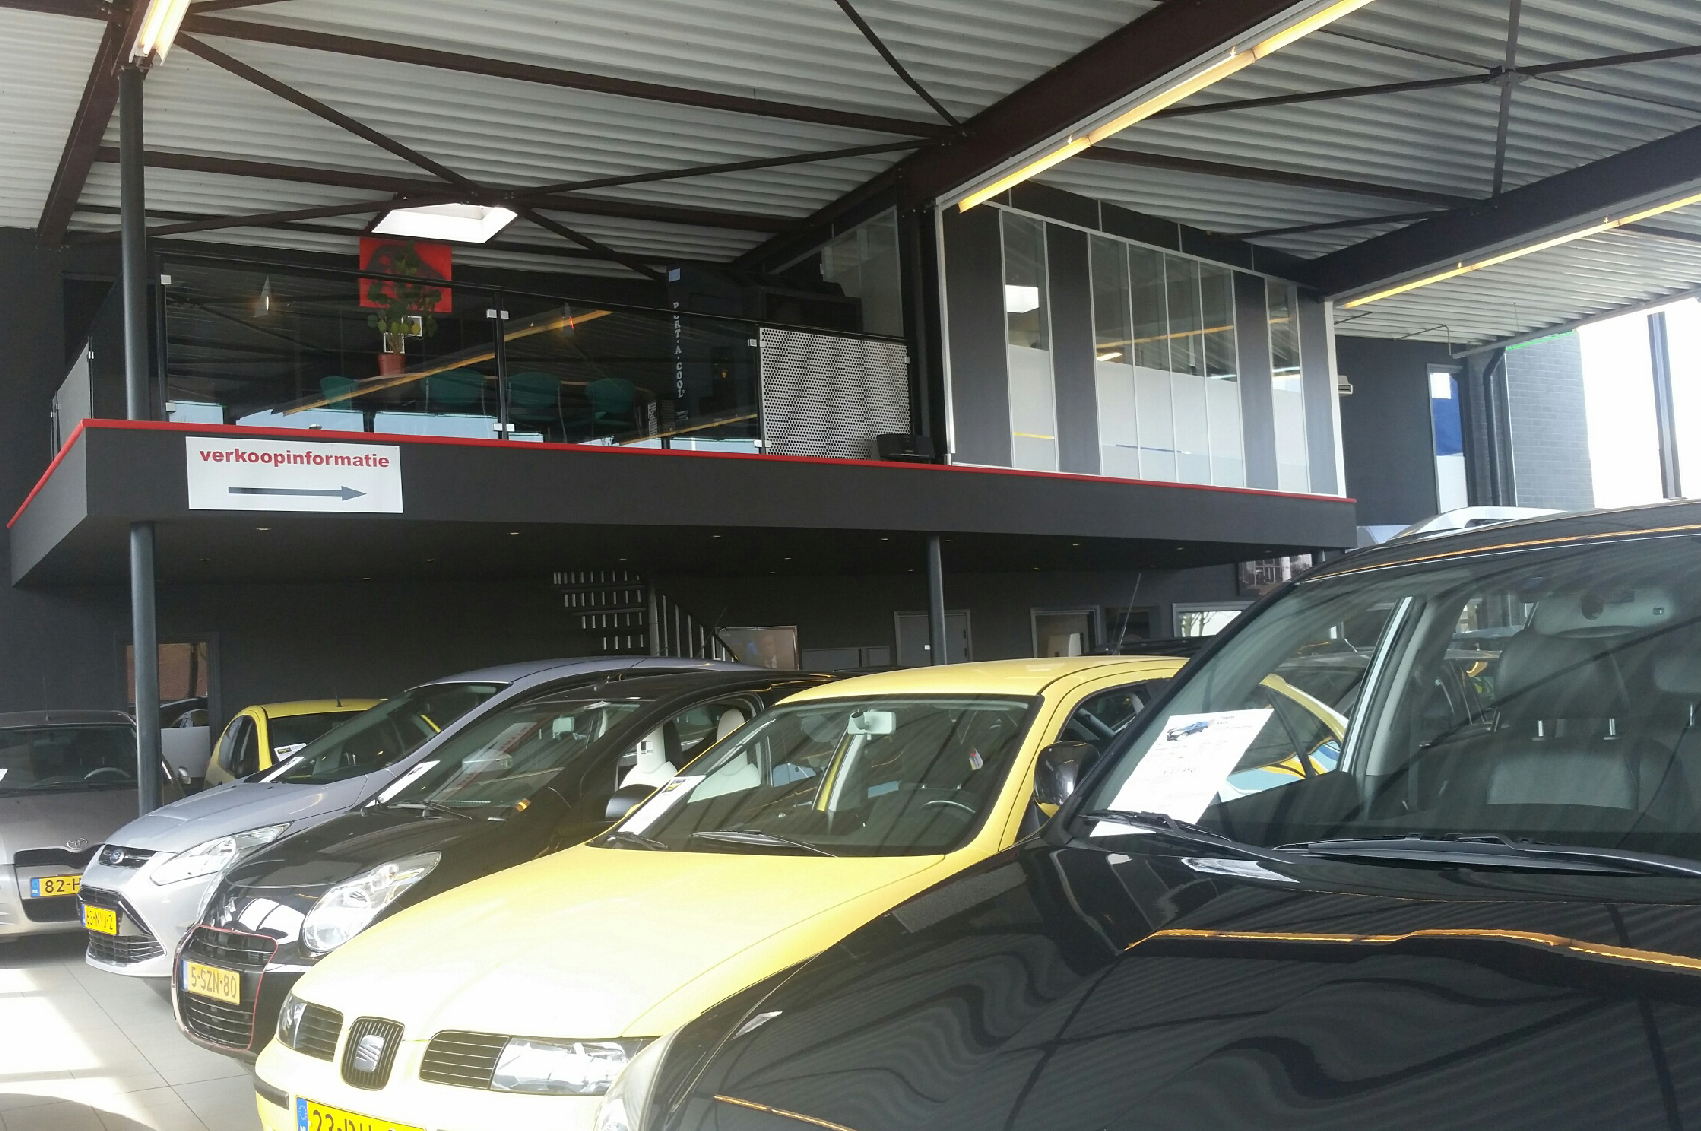 Port A Cool koeling autogarage showroom